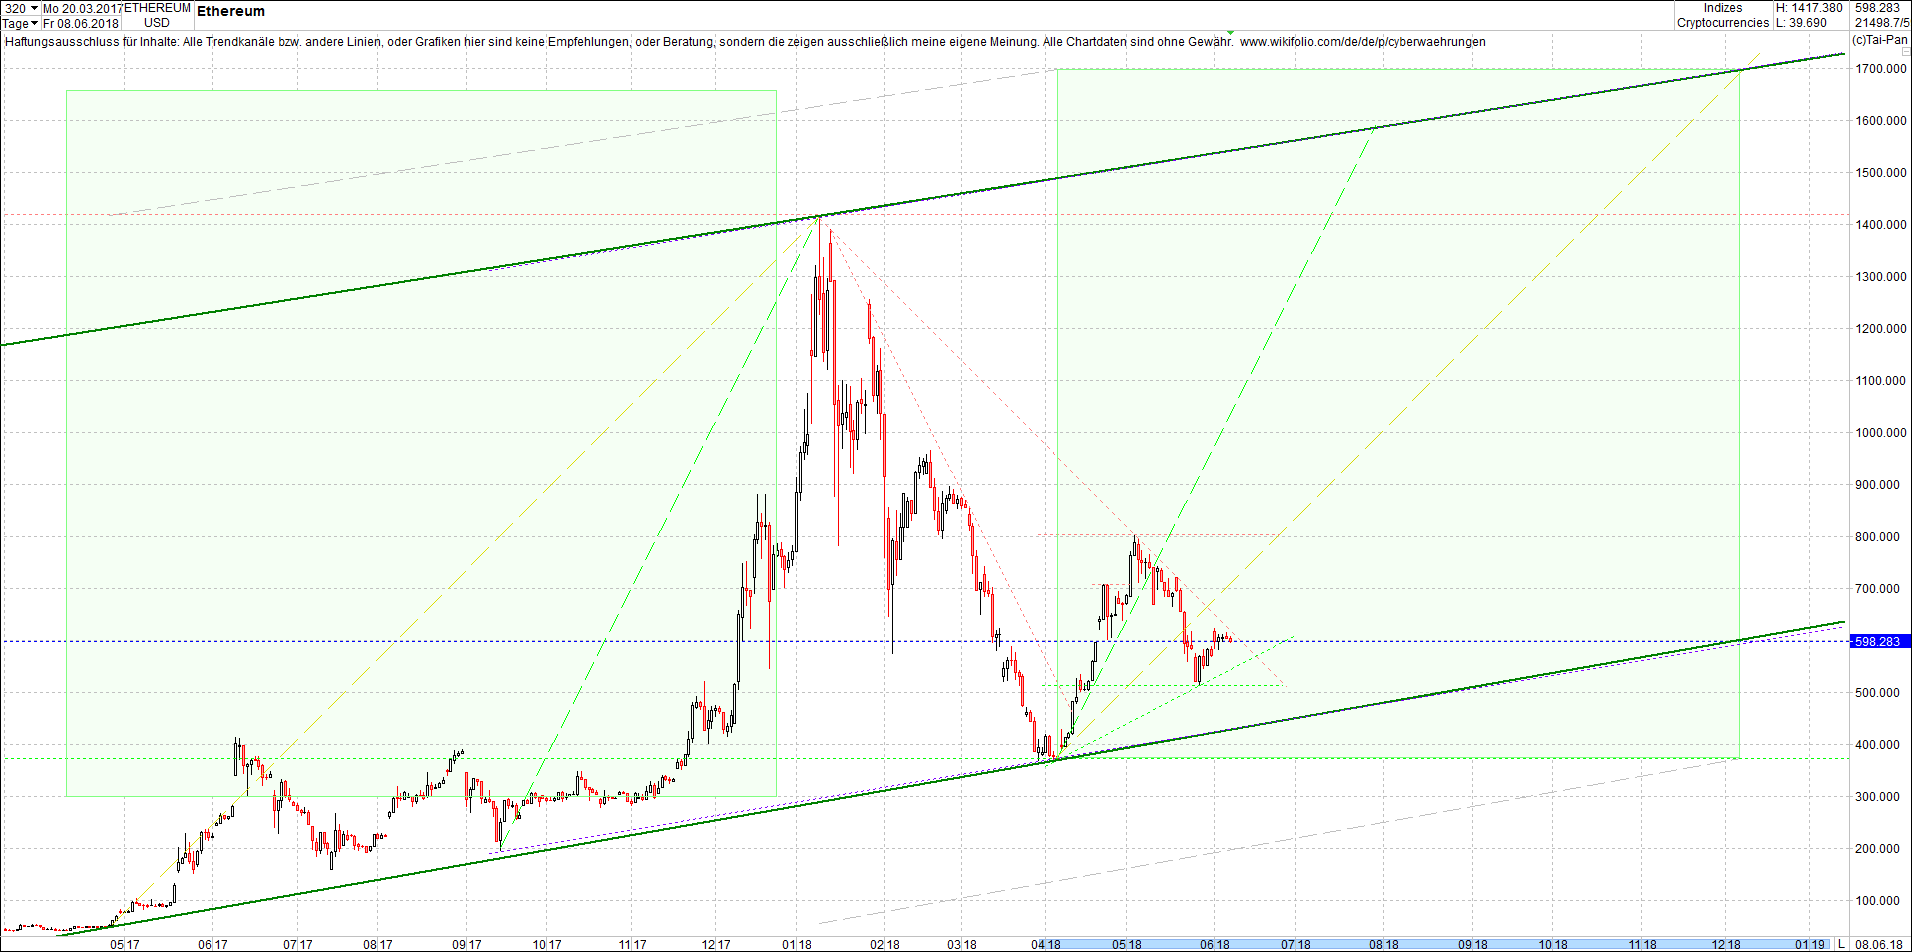 ethereum_chart_sp__tnachmittag.png